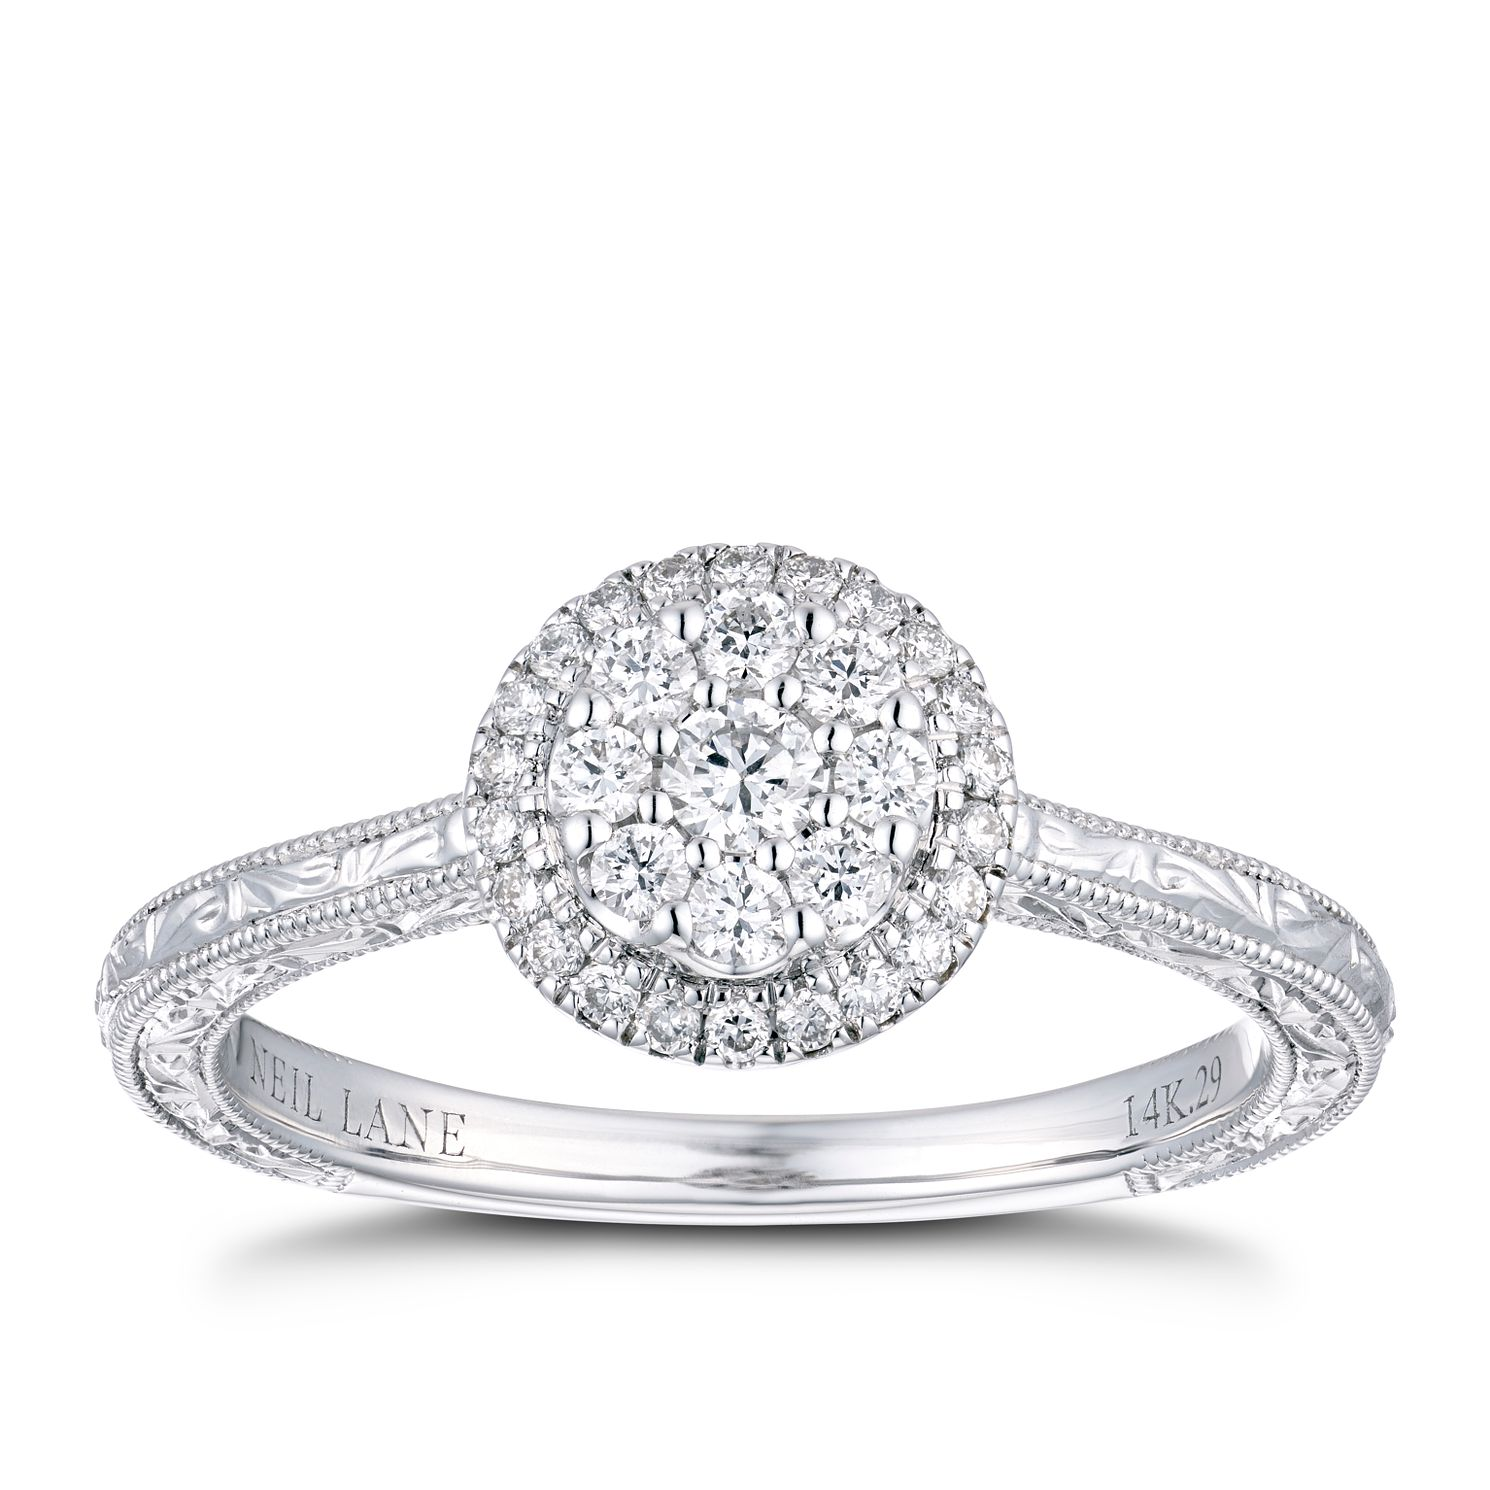 Neil Lane 14ct White Gold 0.29ct Diamond Engagement Ring - Product number 4150260